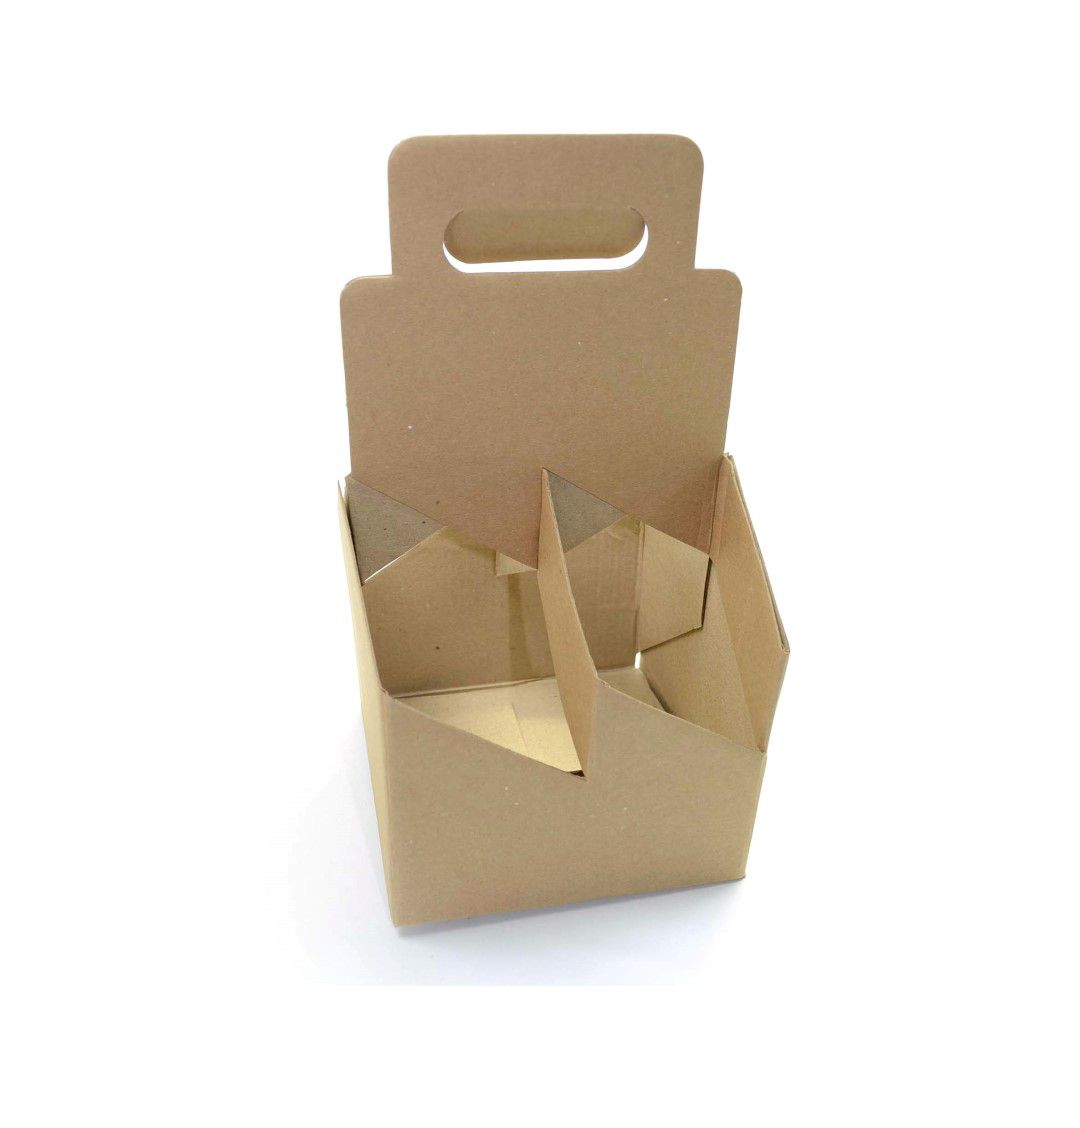 Ref. 303 Kit Engradado Kraft 4 Garrafas 600ml - 15,5x15,5x30cm - c/ 10 unidades